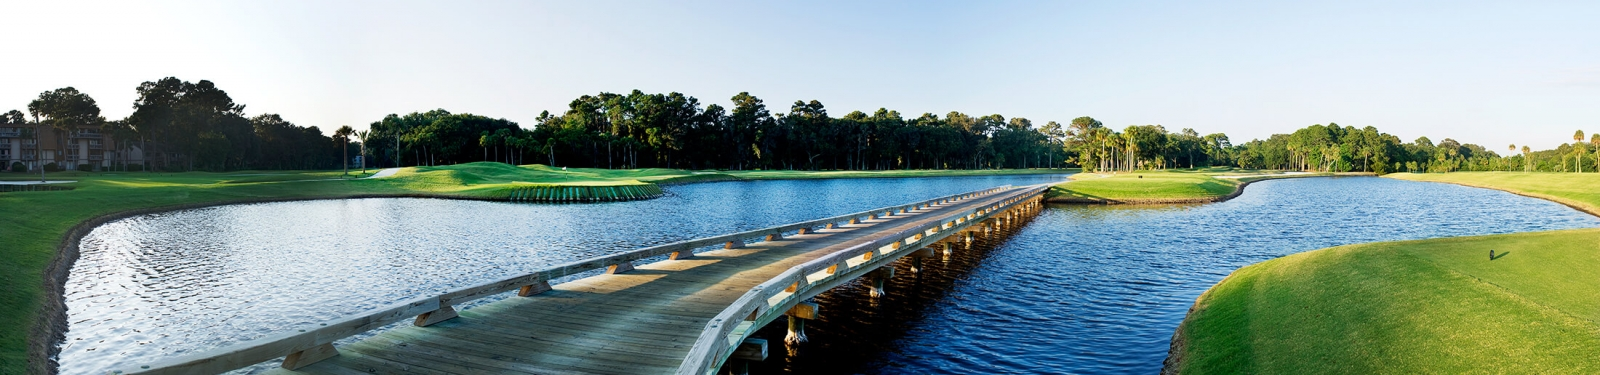 Bridges over the water at Pete Dye course, Palmetto Dunes